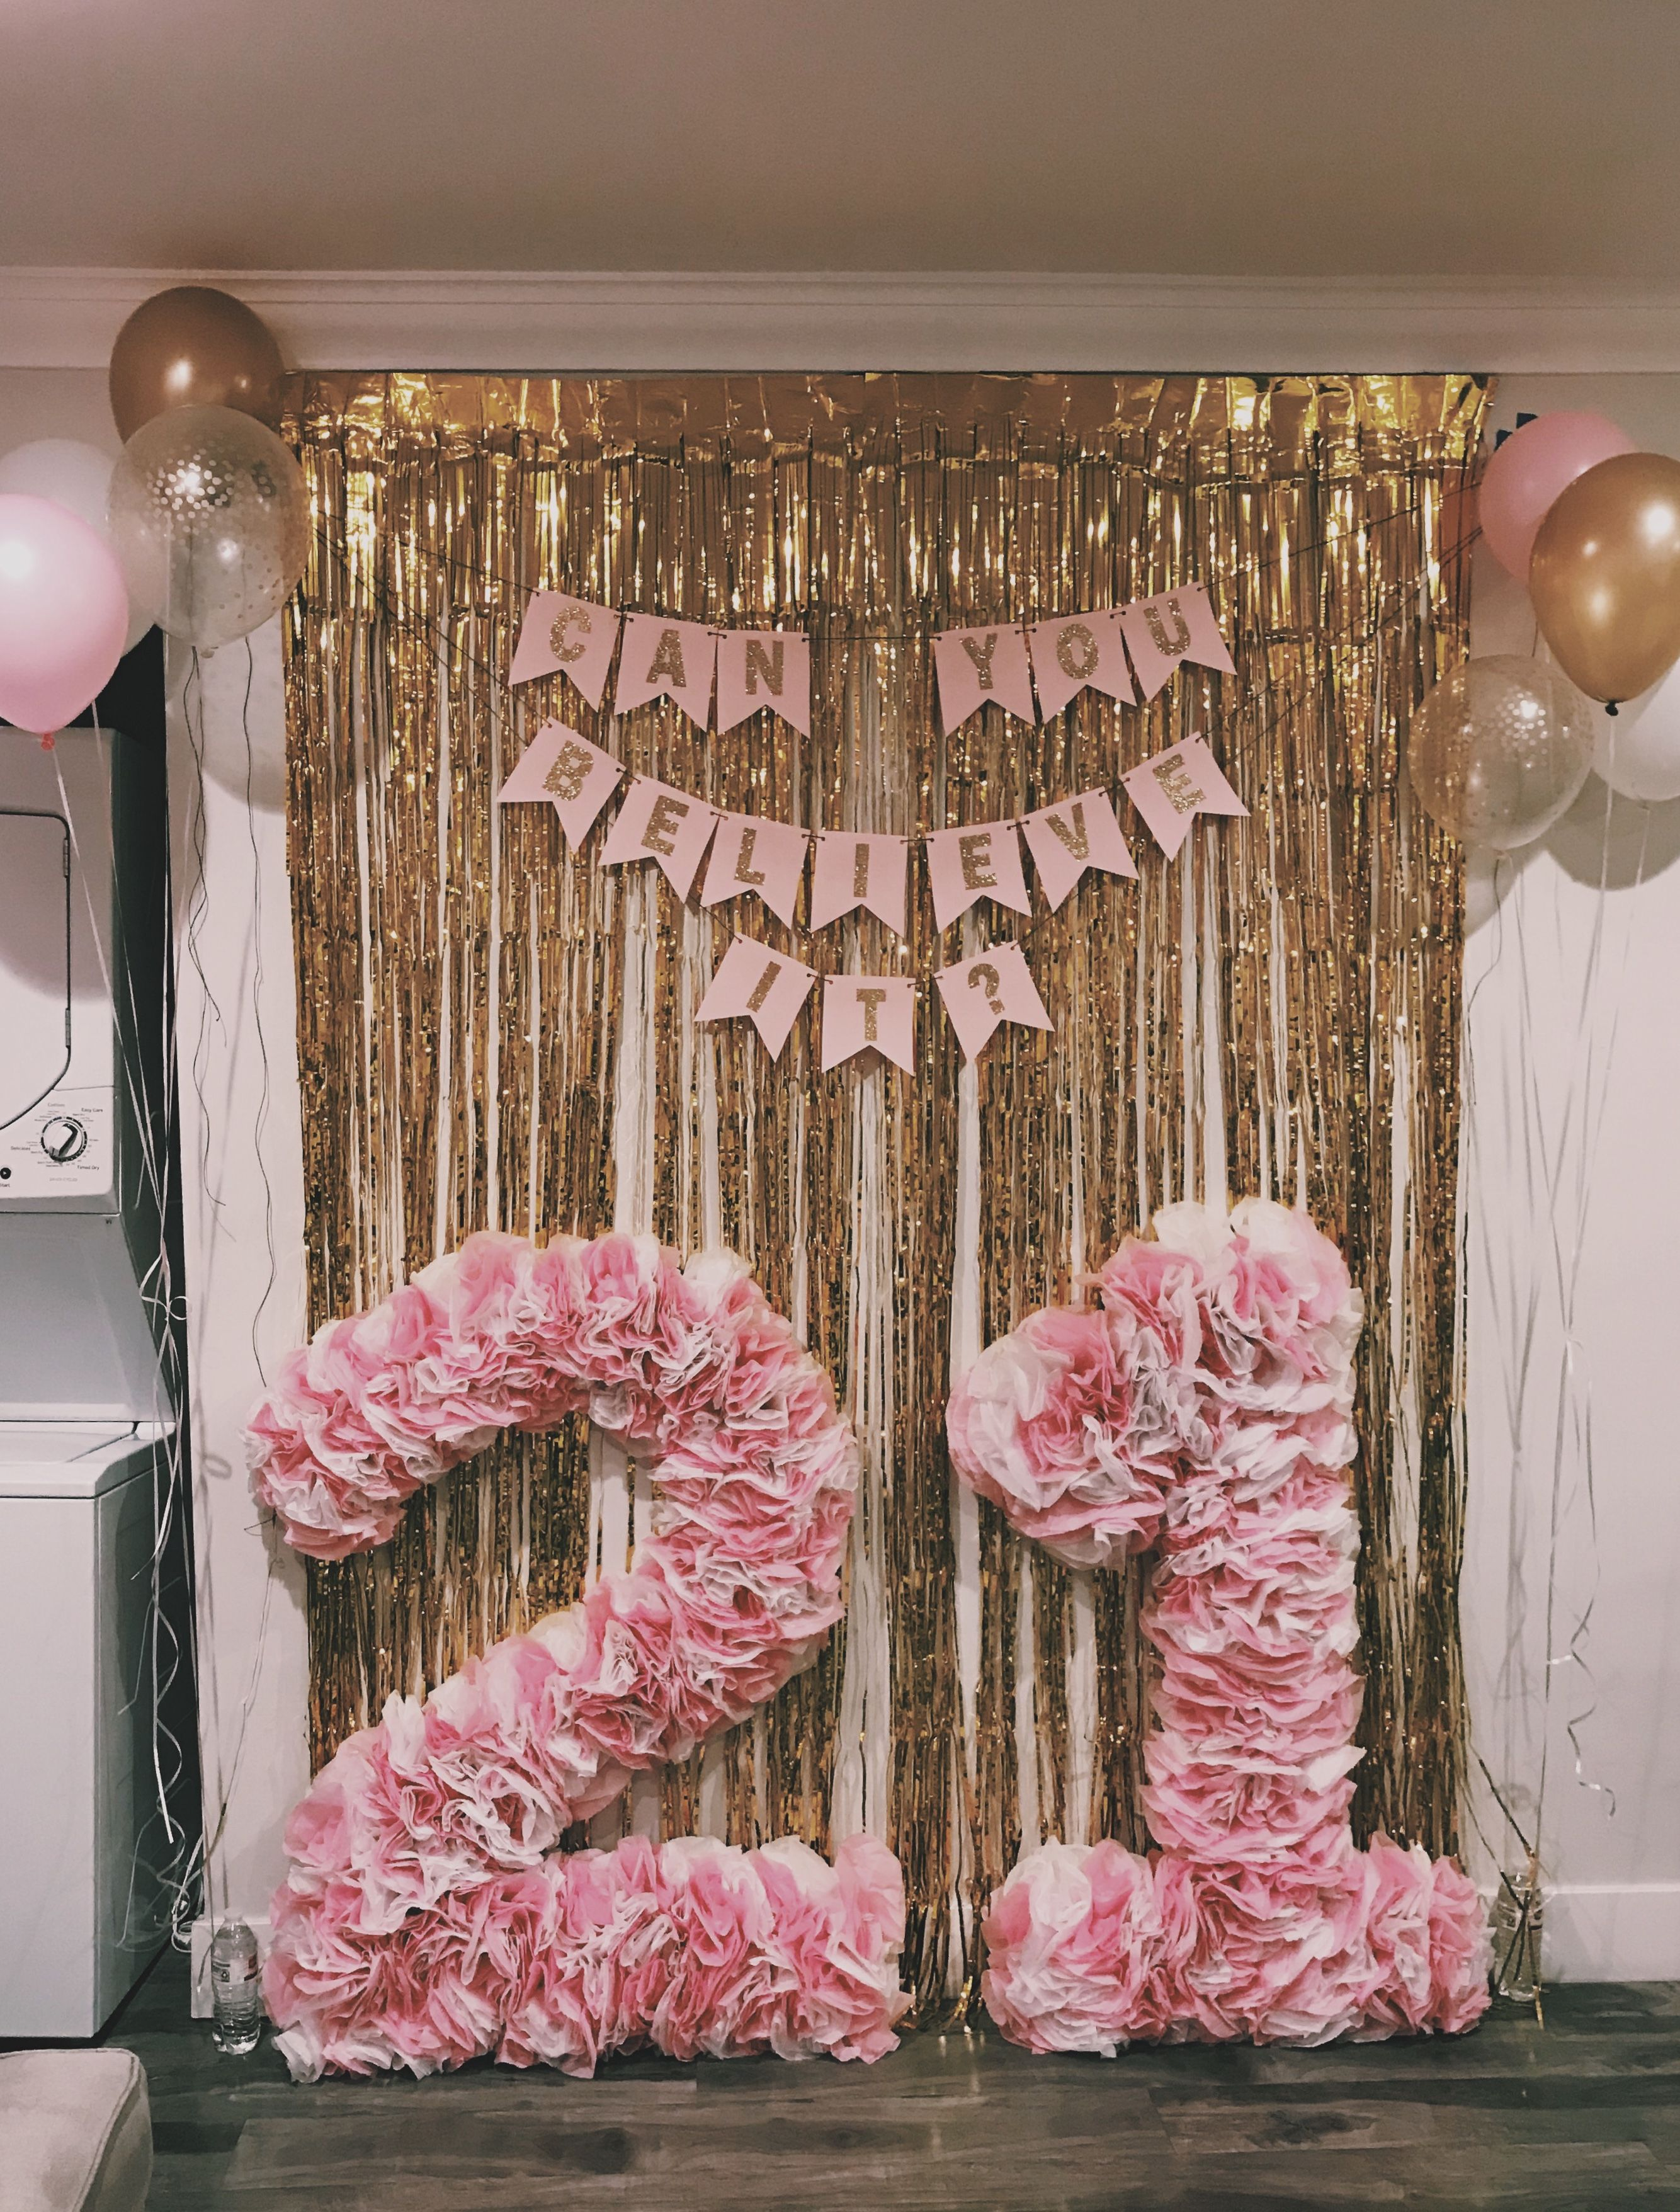 Diy Tissue Paper Numbers White And Pink Tissue Hot Glued To Card